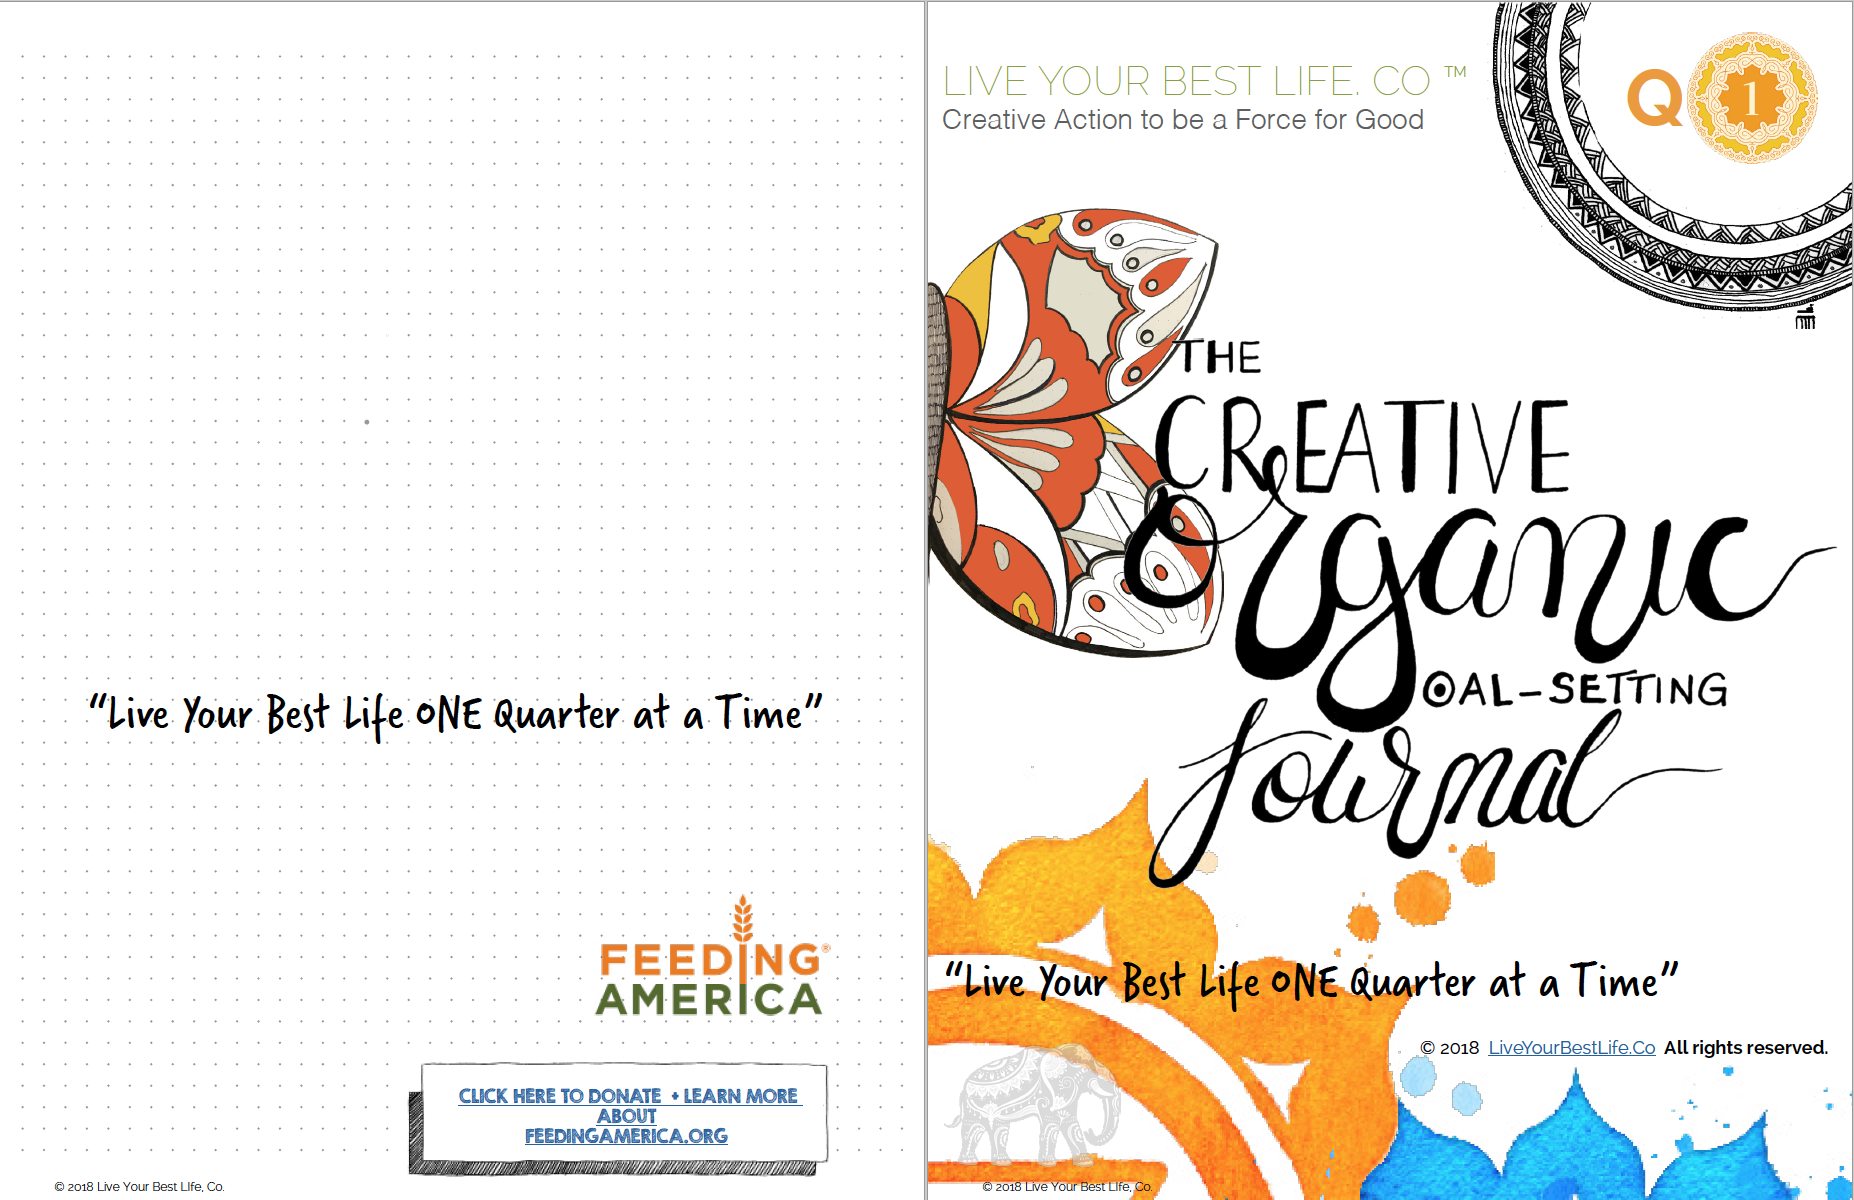 Creative Organic Goal Setting Journal - Live You Best Life One Quarter at a Time 2018 - Q1.png